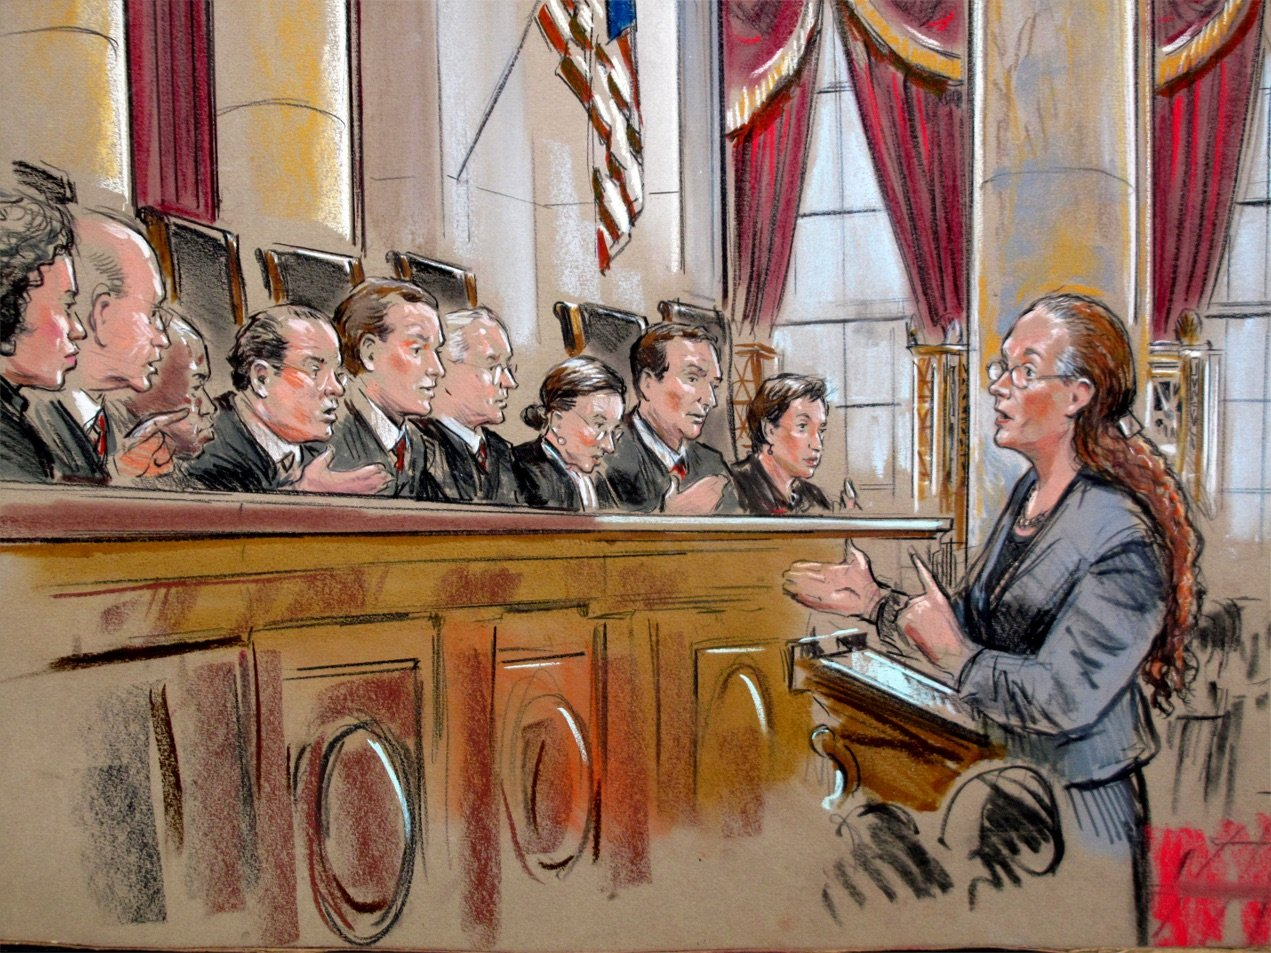 drawing of a courtroom scene